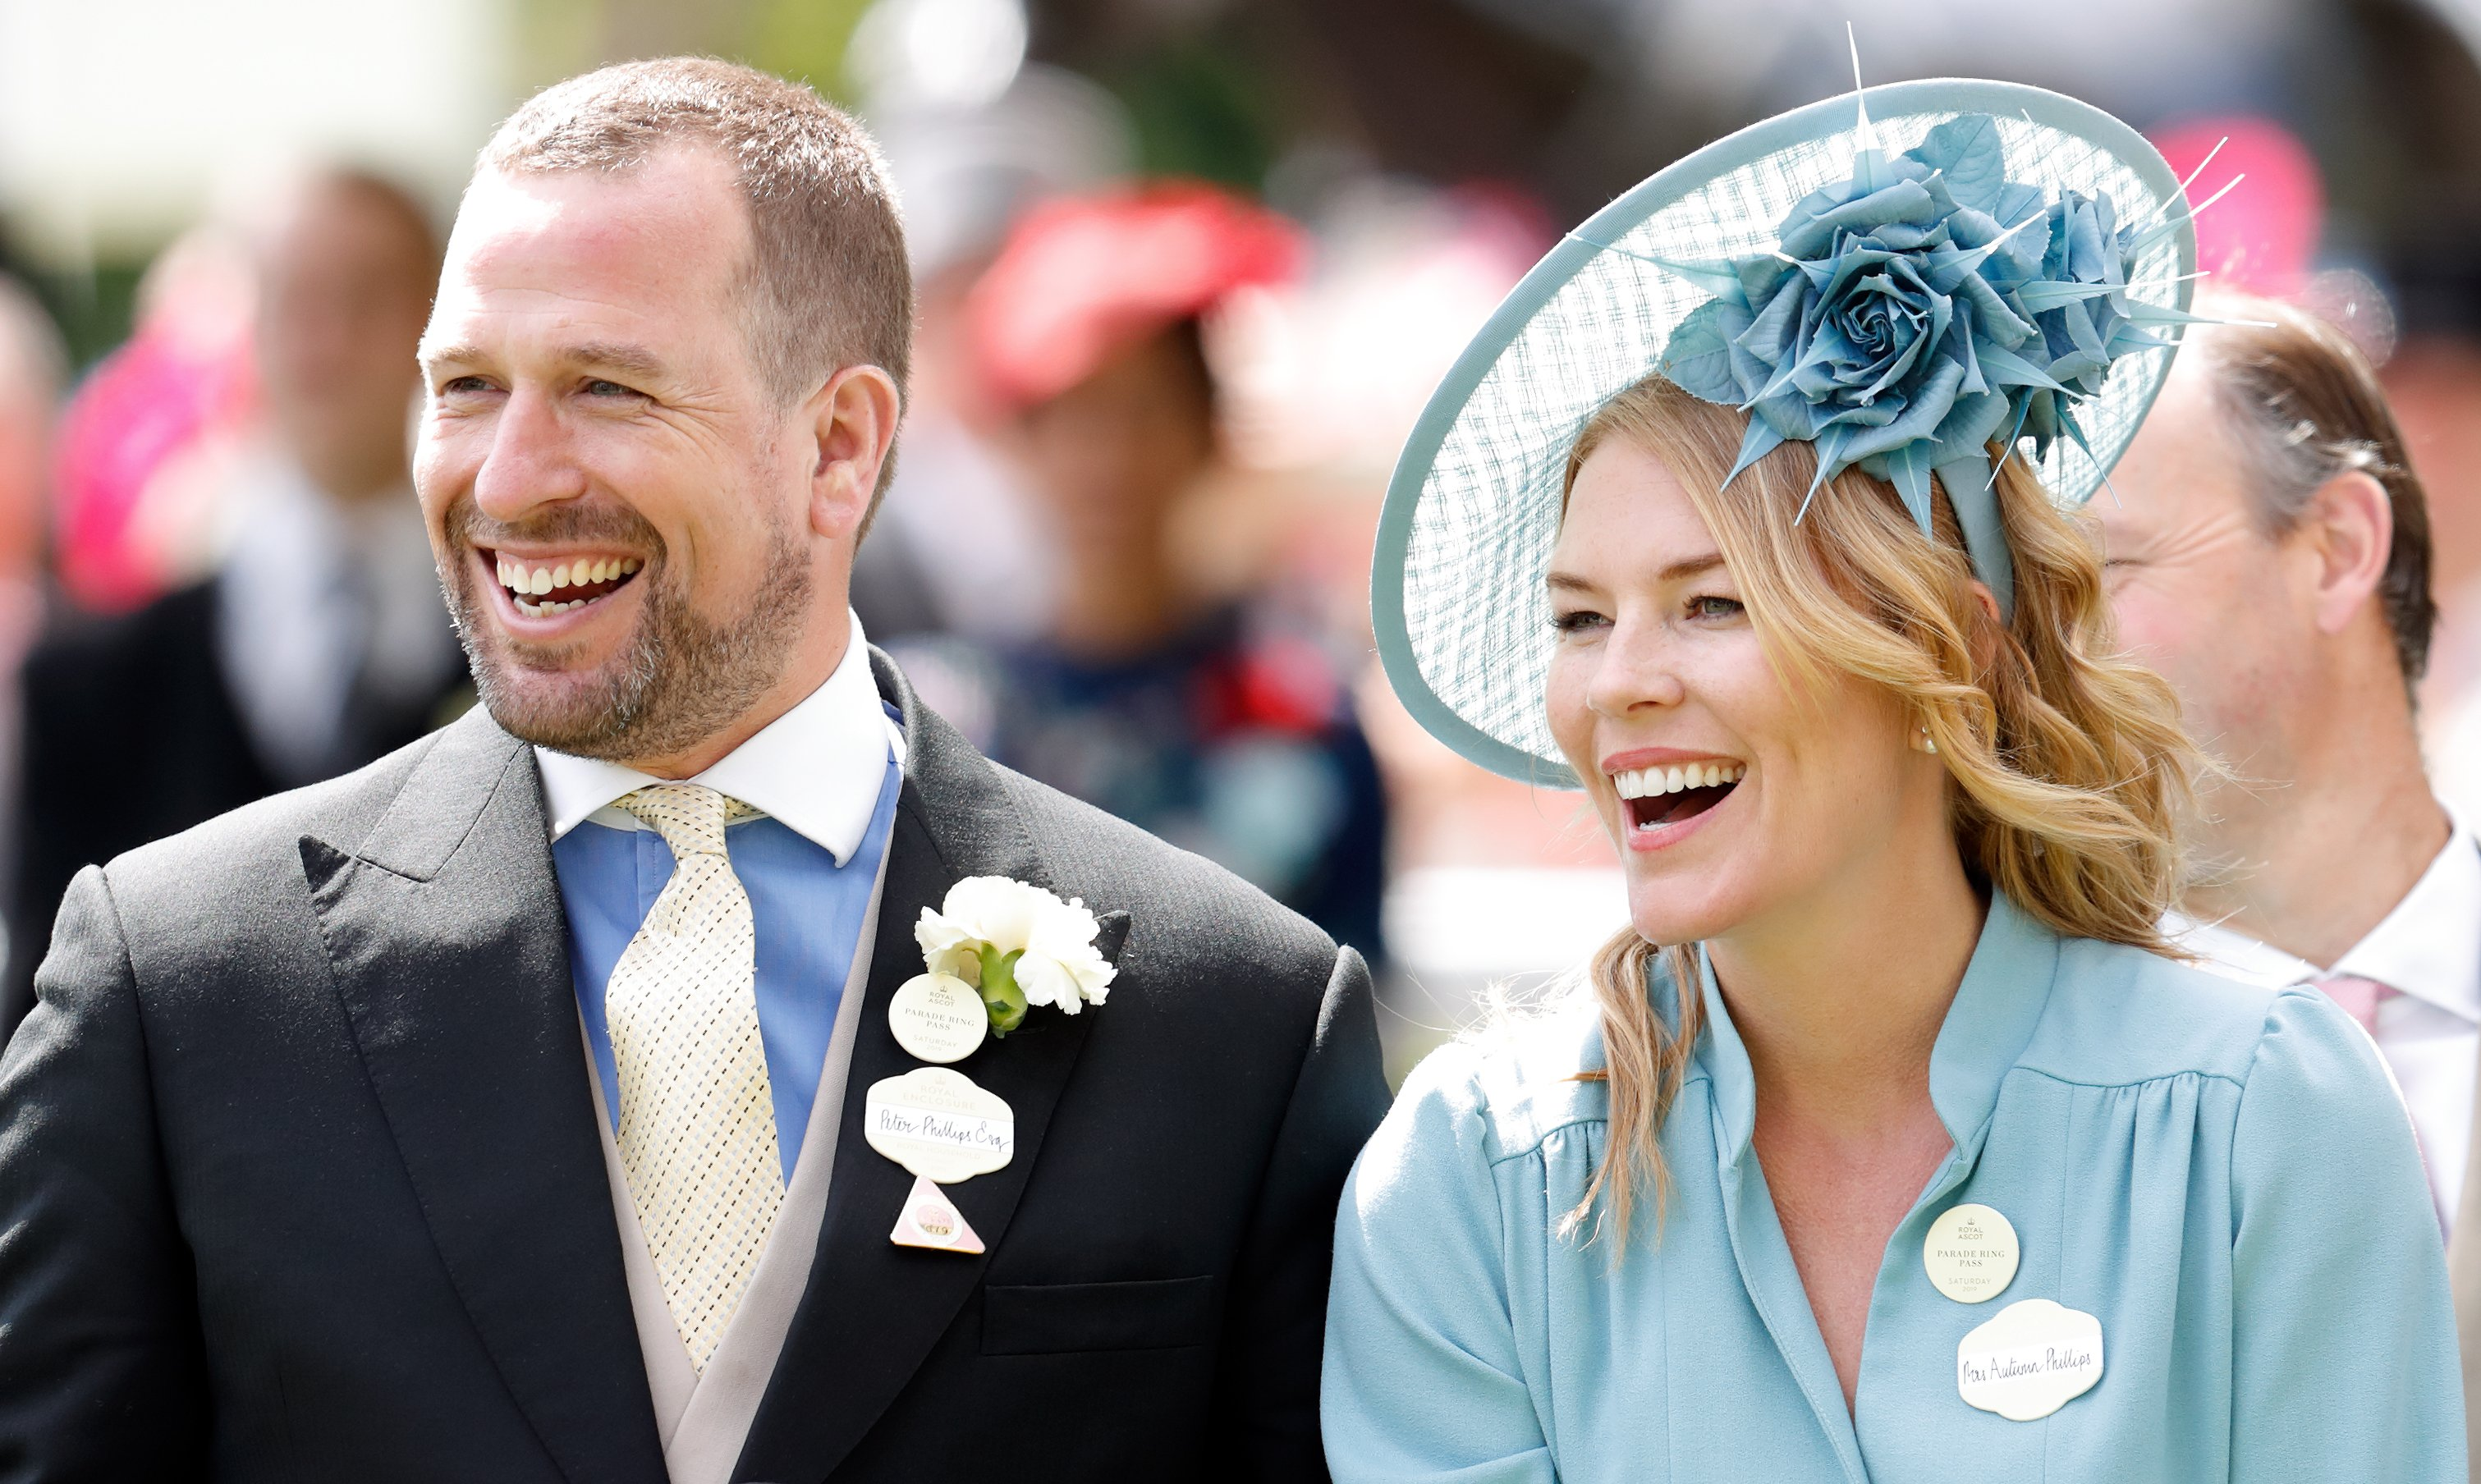 Peter Phillips and Autumn Phillips attend Royal Ascot at Ascot Racecourse on June 22, 2019 in Ascot, England | Photo: Getty Images